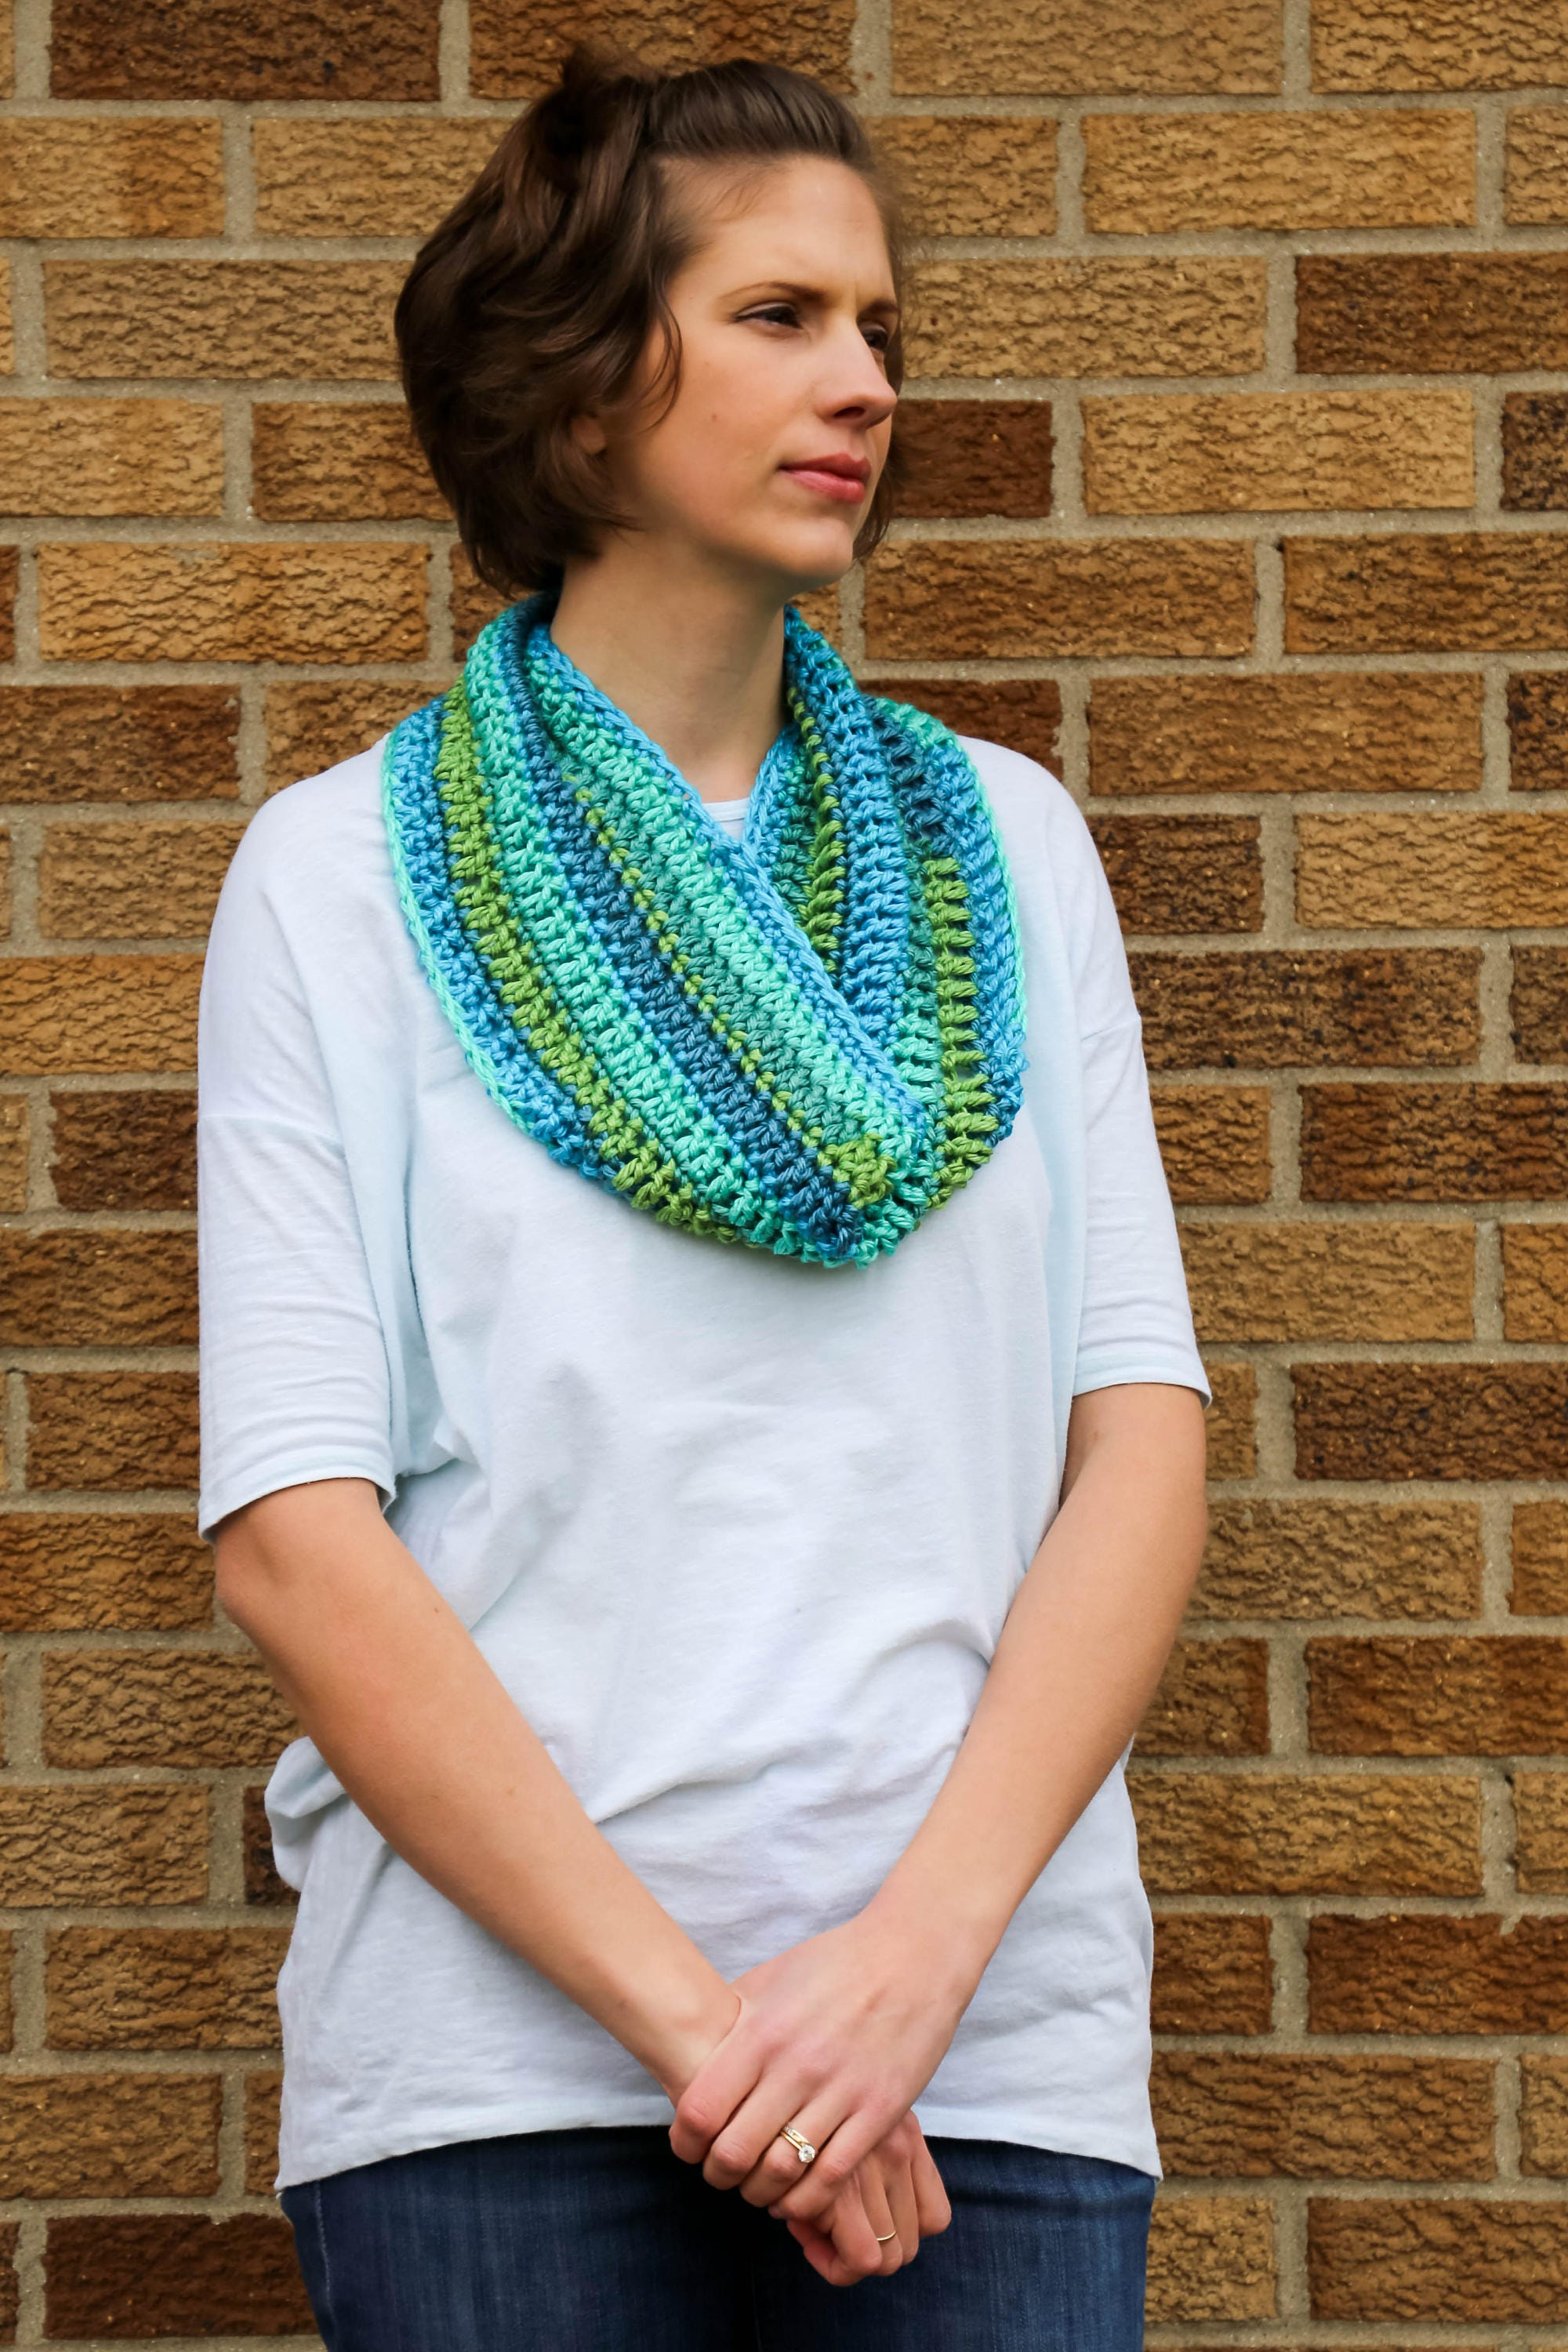 SALE! Caribbean Stripes Lacy Infinity Scarf